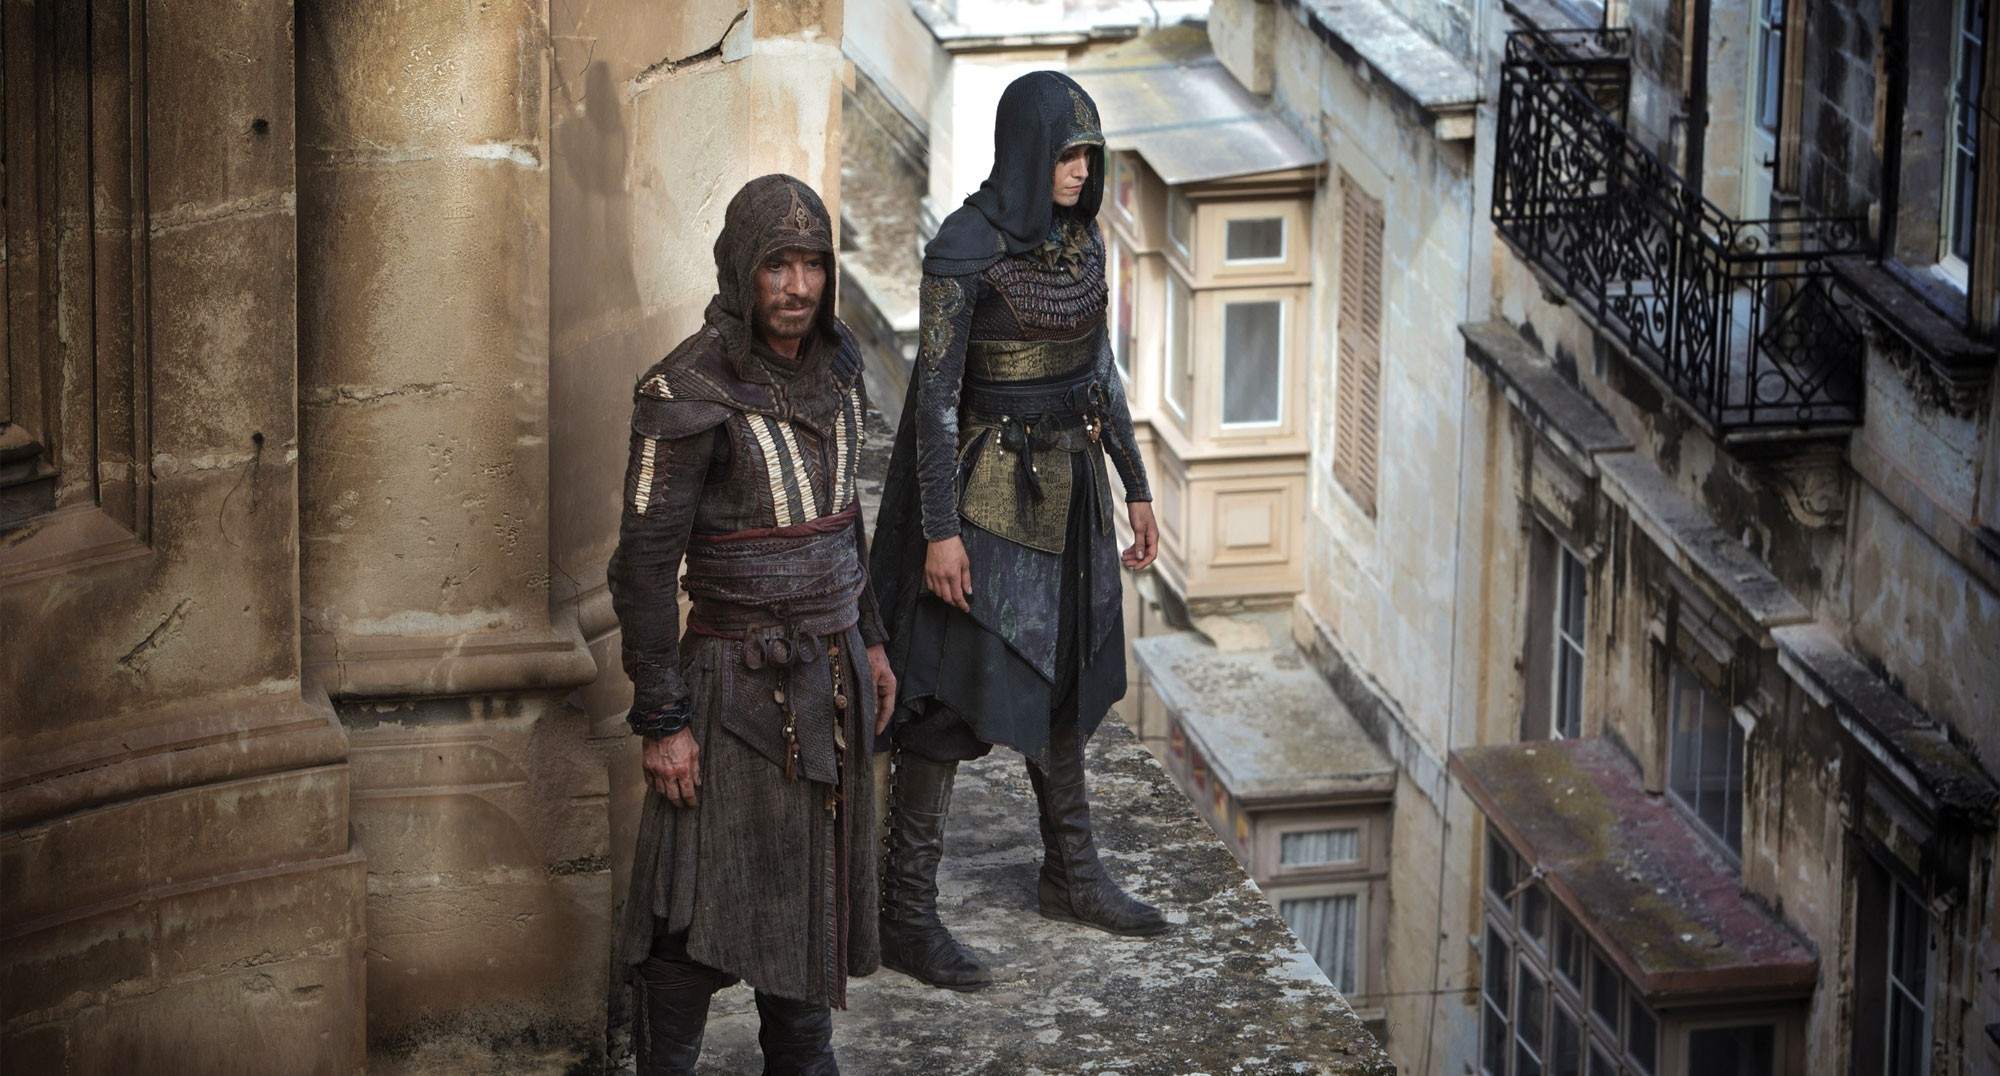 assassins-creed-gallery-04-gallery-image